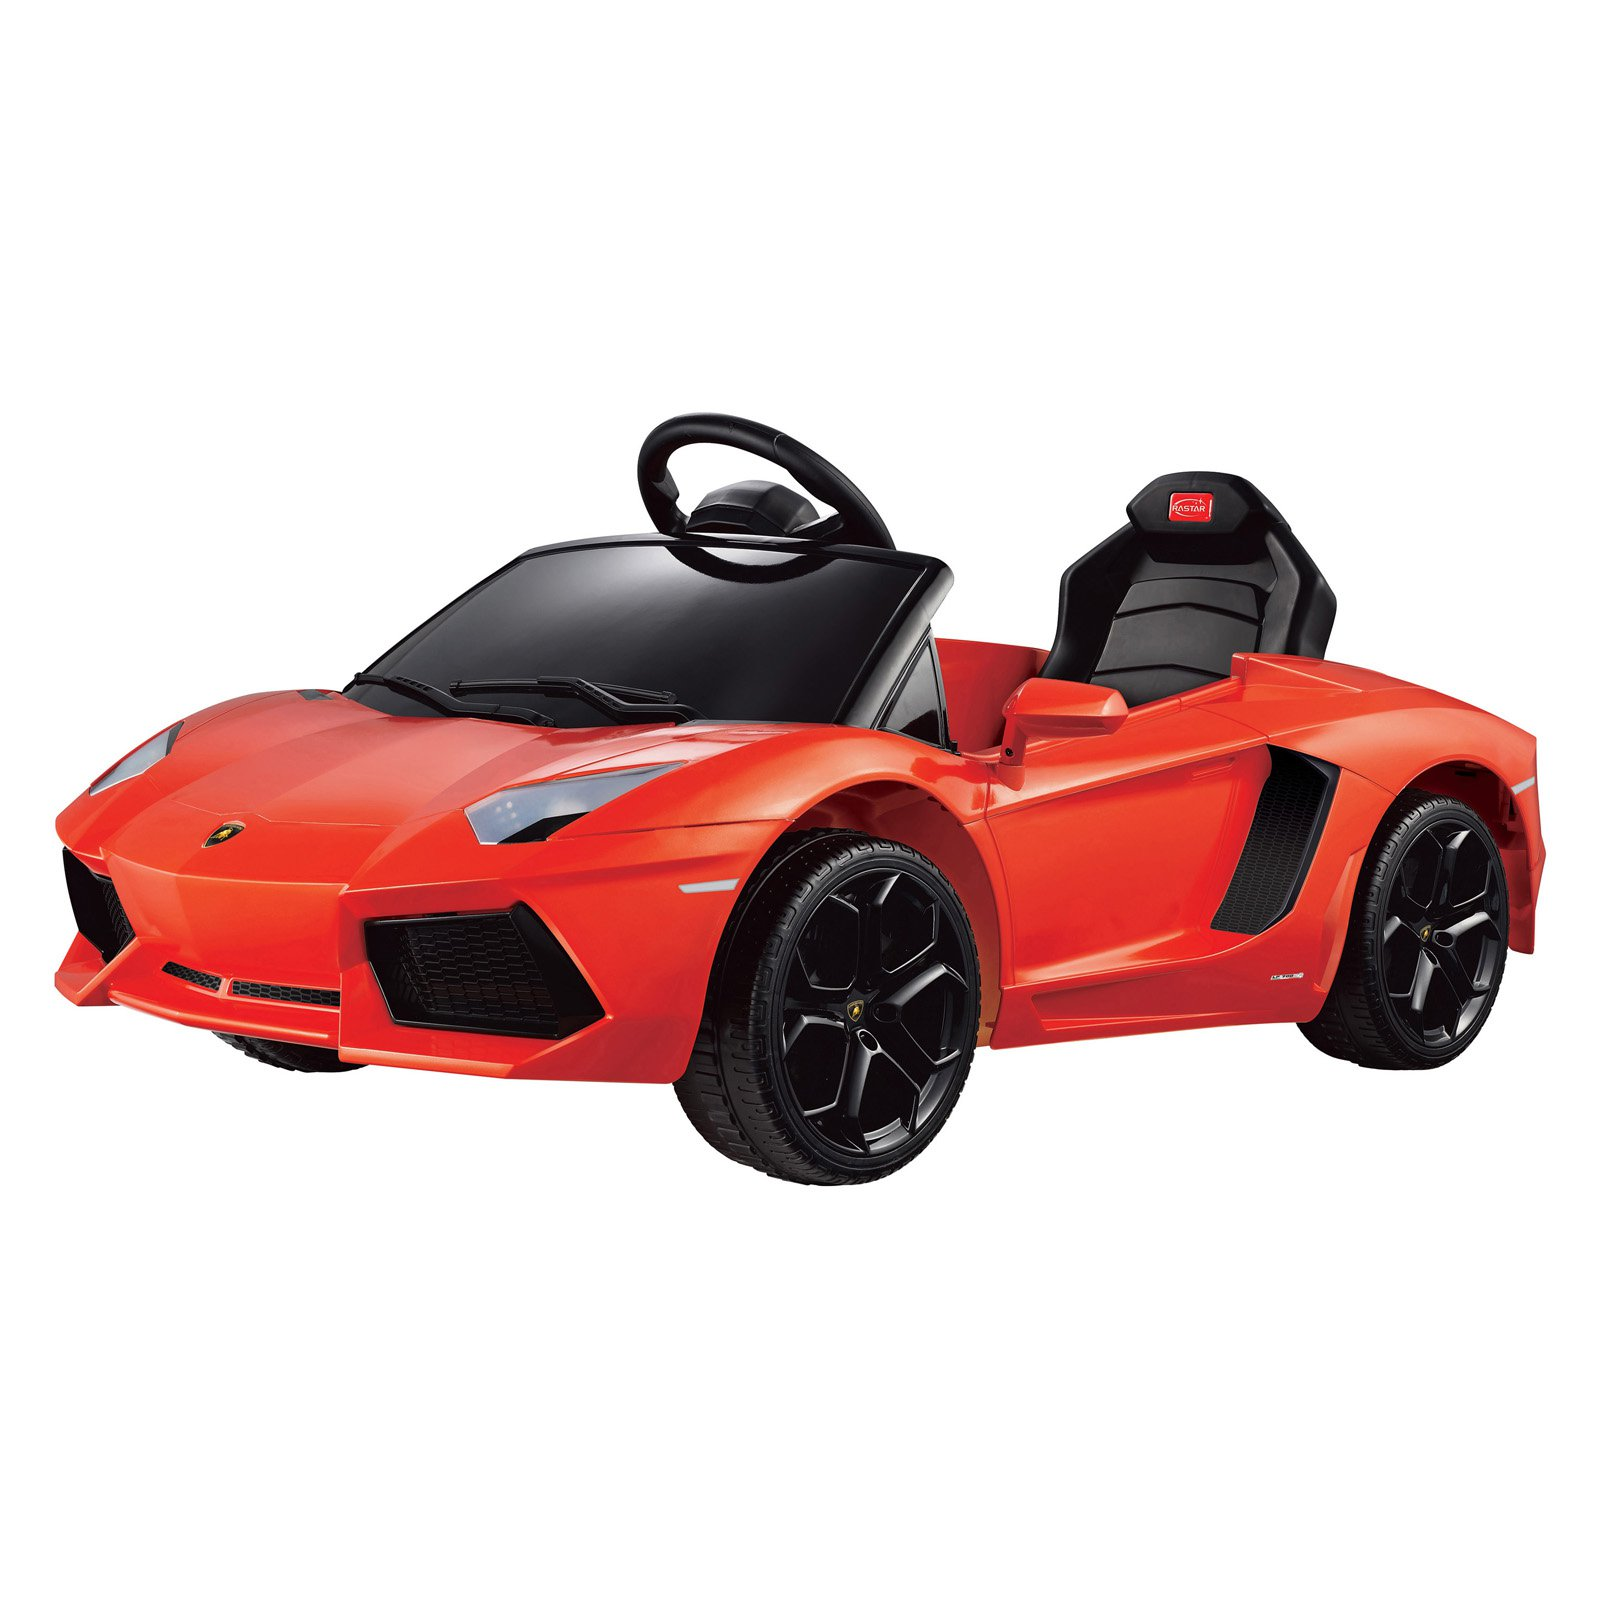 Vroom Rider Lamborghini Aventador LP700-4 Rastar Battery Powered Riding Toy